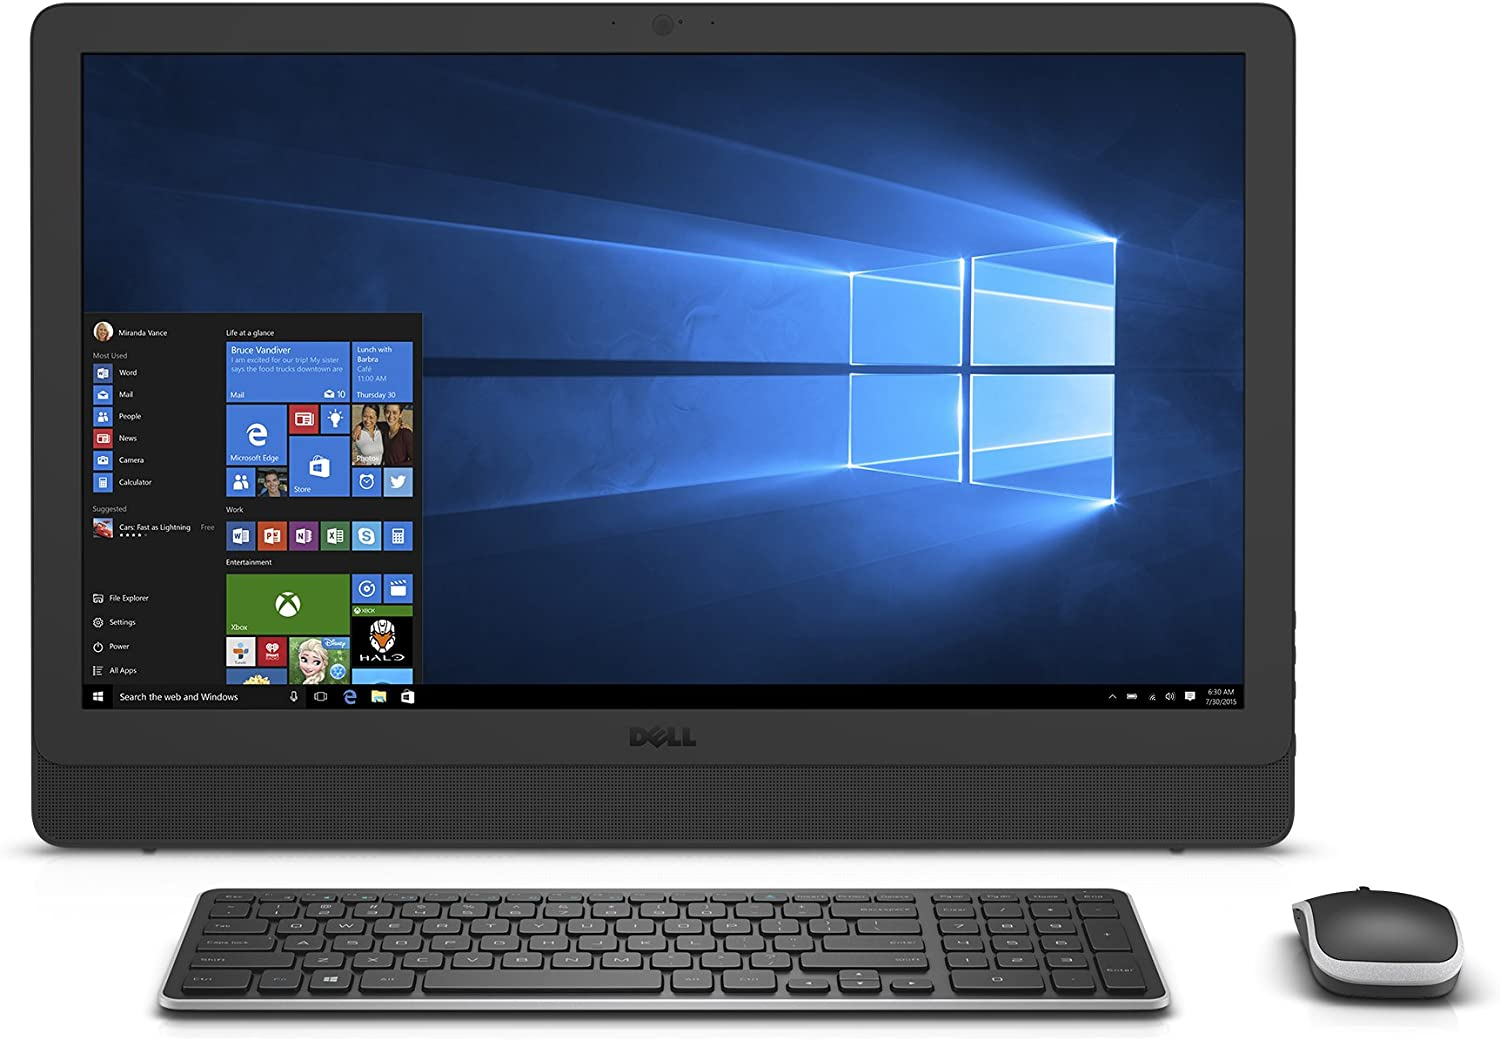 "Dell i3464-3000BLK-PUS Inspiron AIO, 23.8"" AIO, (7th Gen Core i3 (up to 2.40 GHz), 8GB, 1TB HDD, Intel HD Graphics 620, Black"